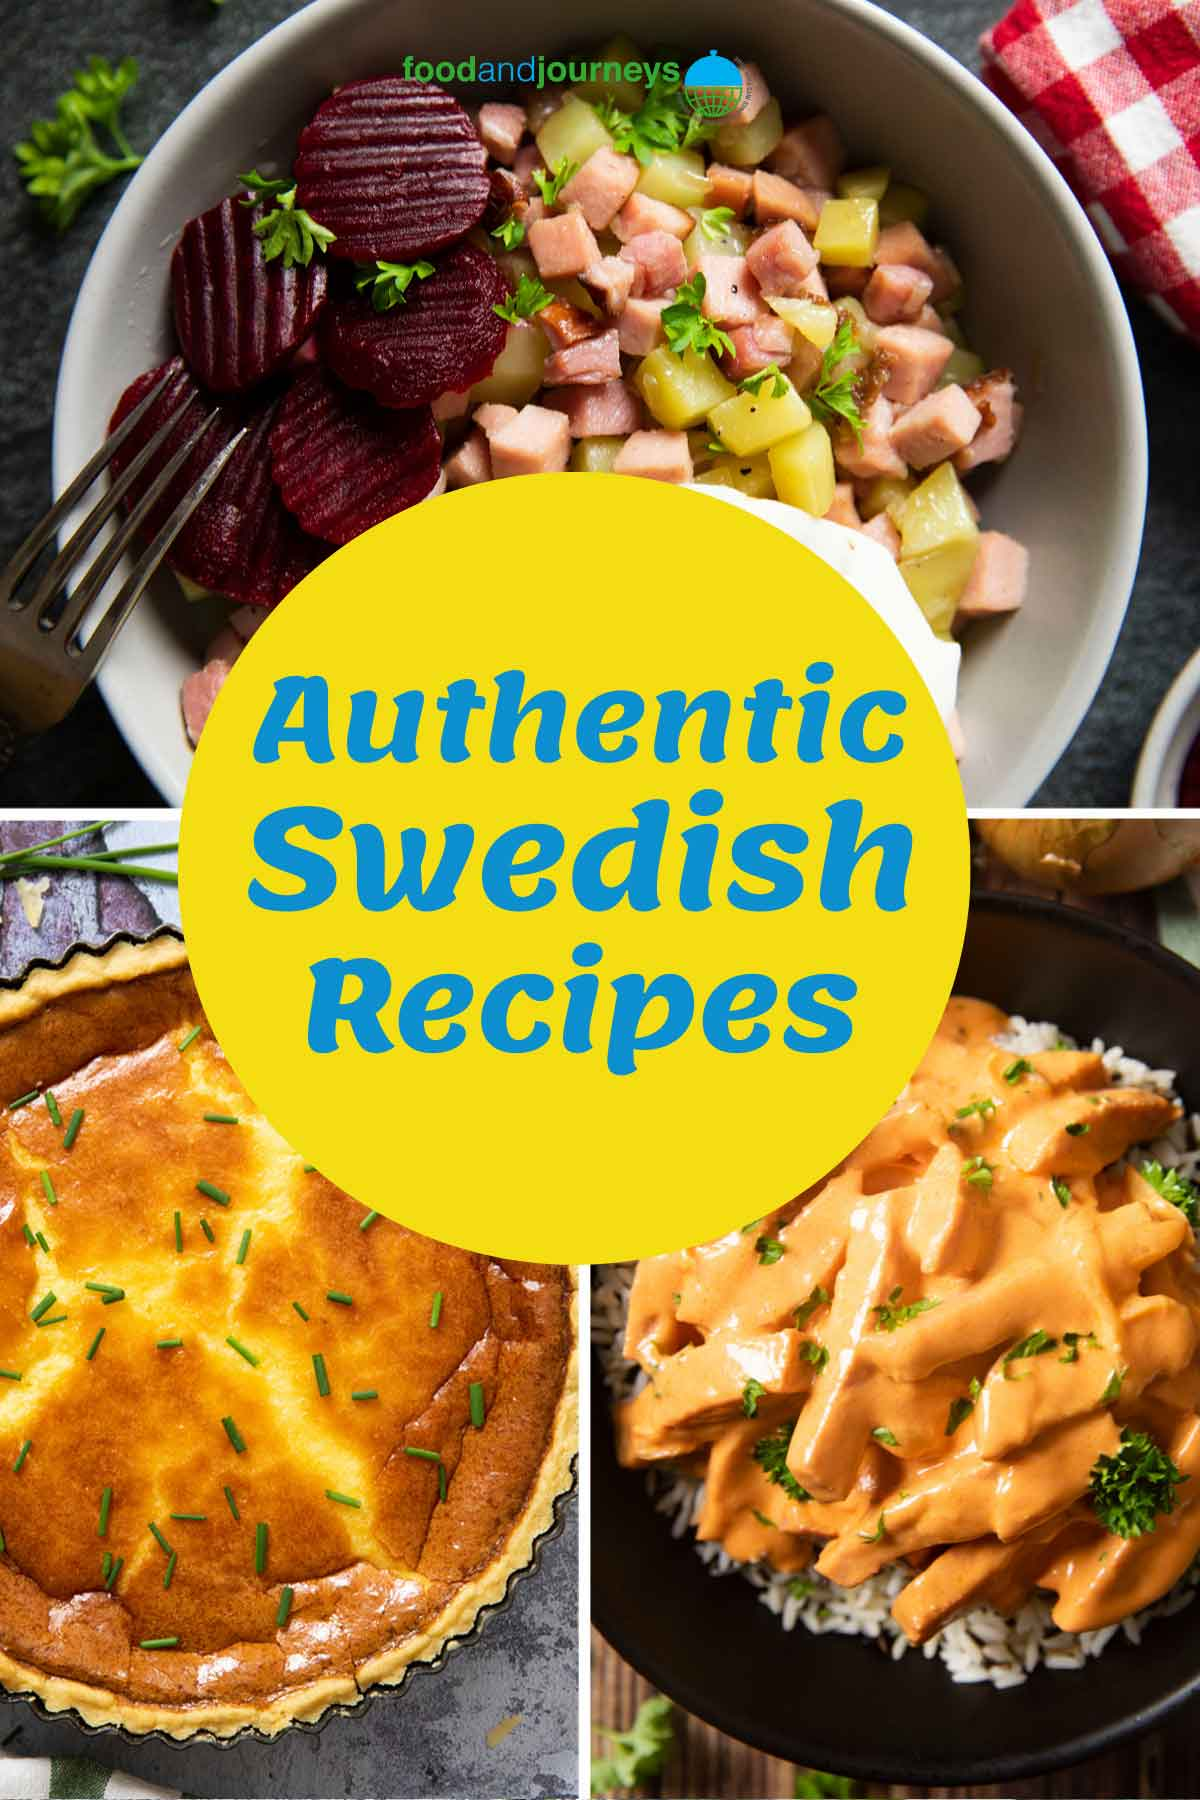 Latest cover for Authentic Swedish Recipes Post showing a collage of classic Swedish dishes.